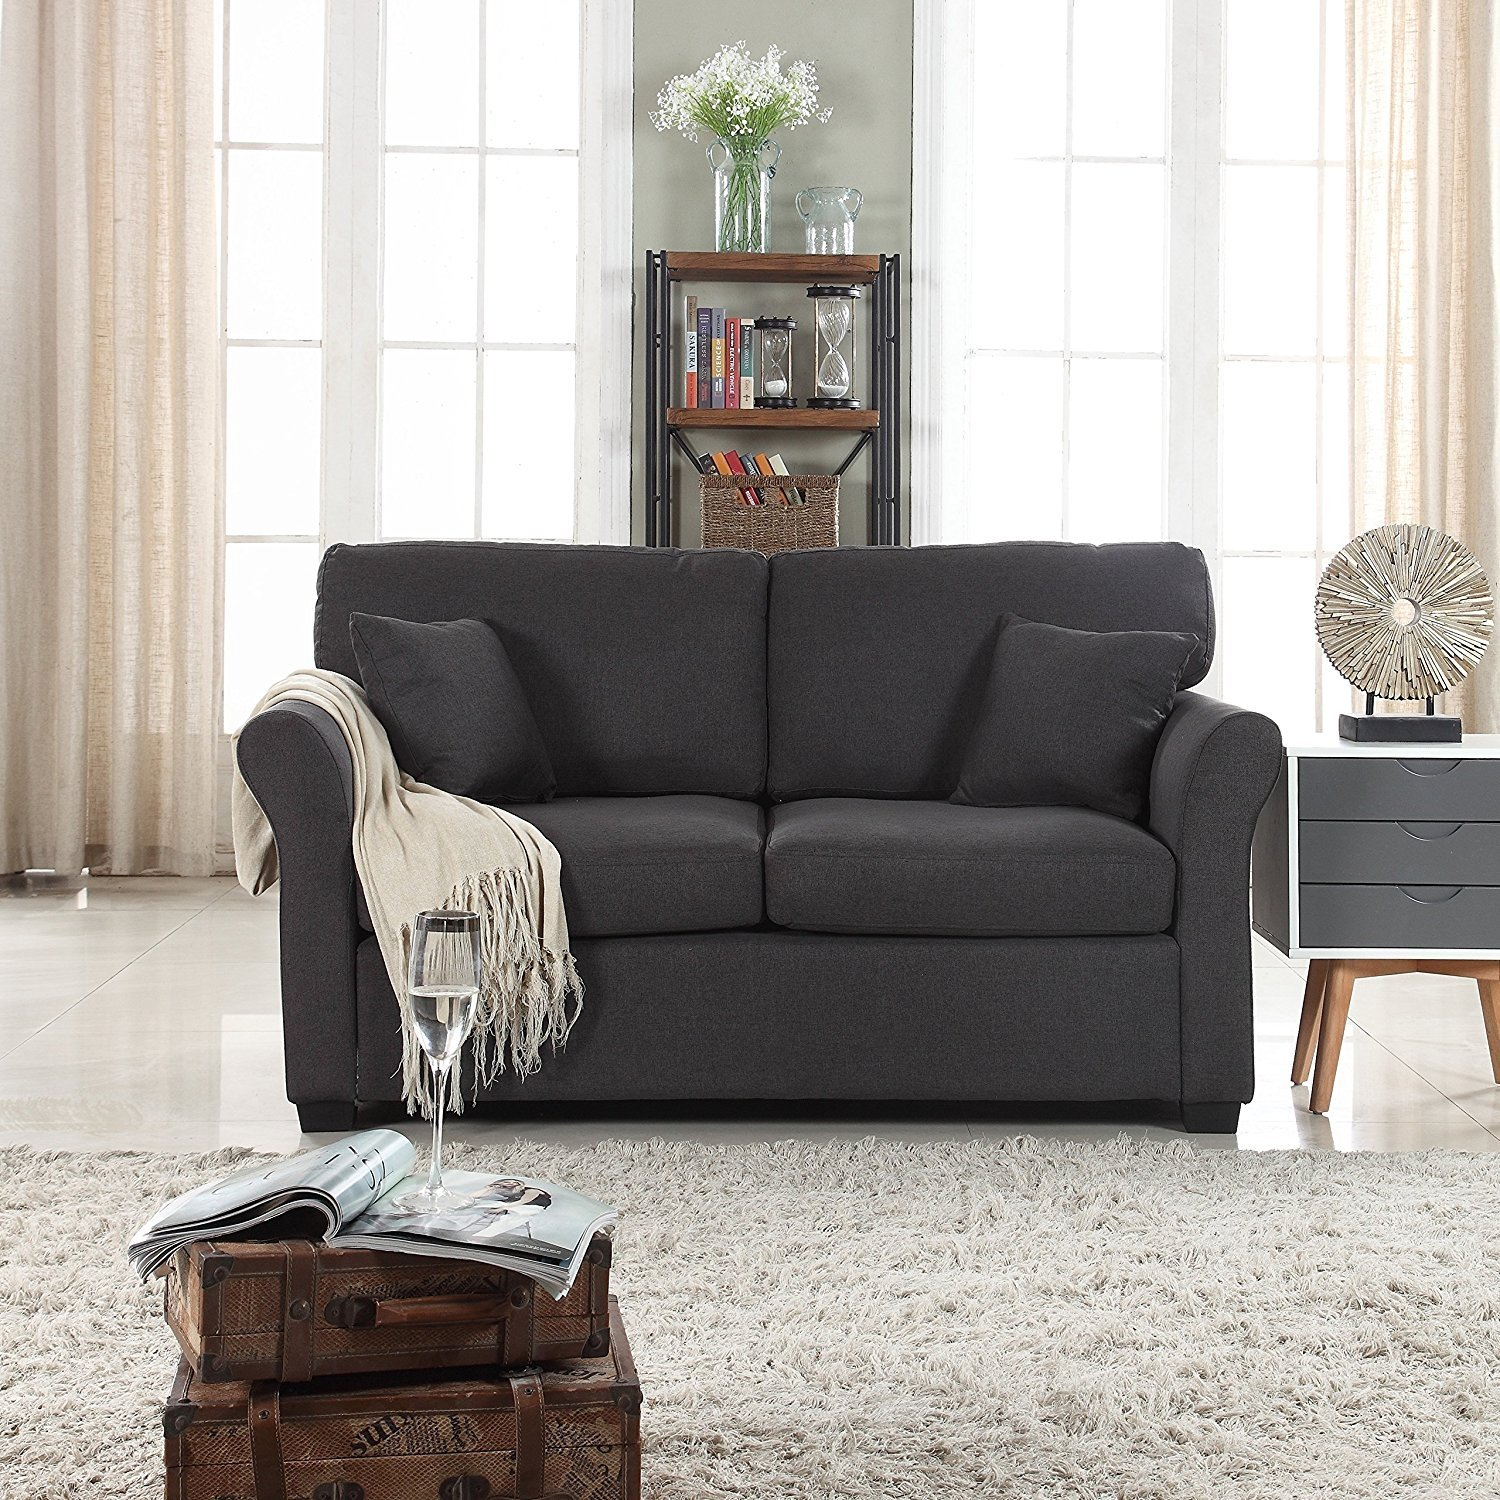 Prime Details About Classic Cozy Comfortable Fabric Love Seat Sofa Living Room Loveseat Dark Grey Squirreltailoven Fun Painted Chair Ideas Images Squirreltailovenorg